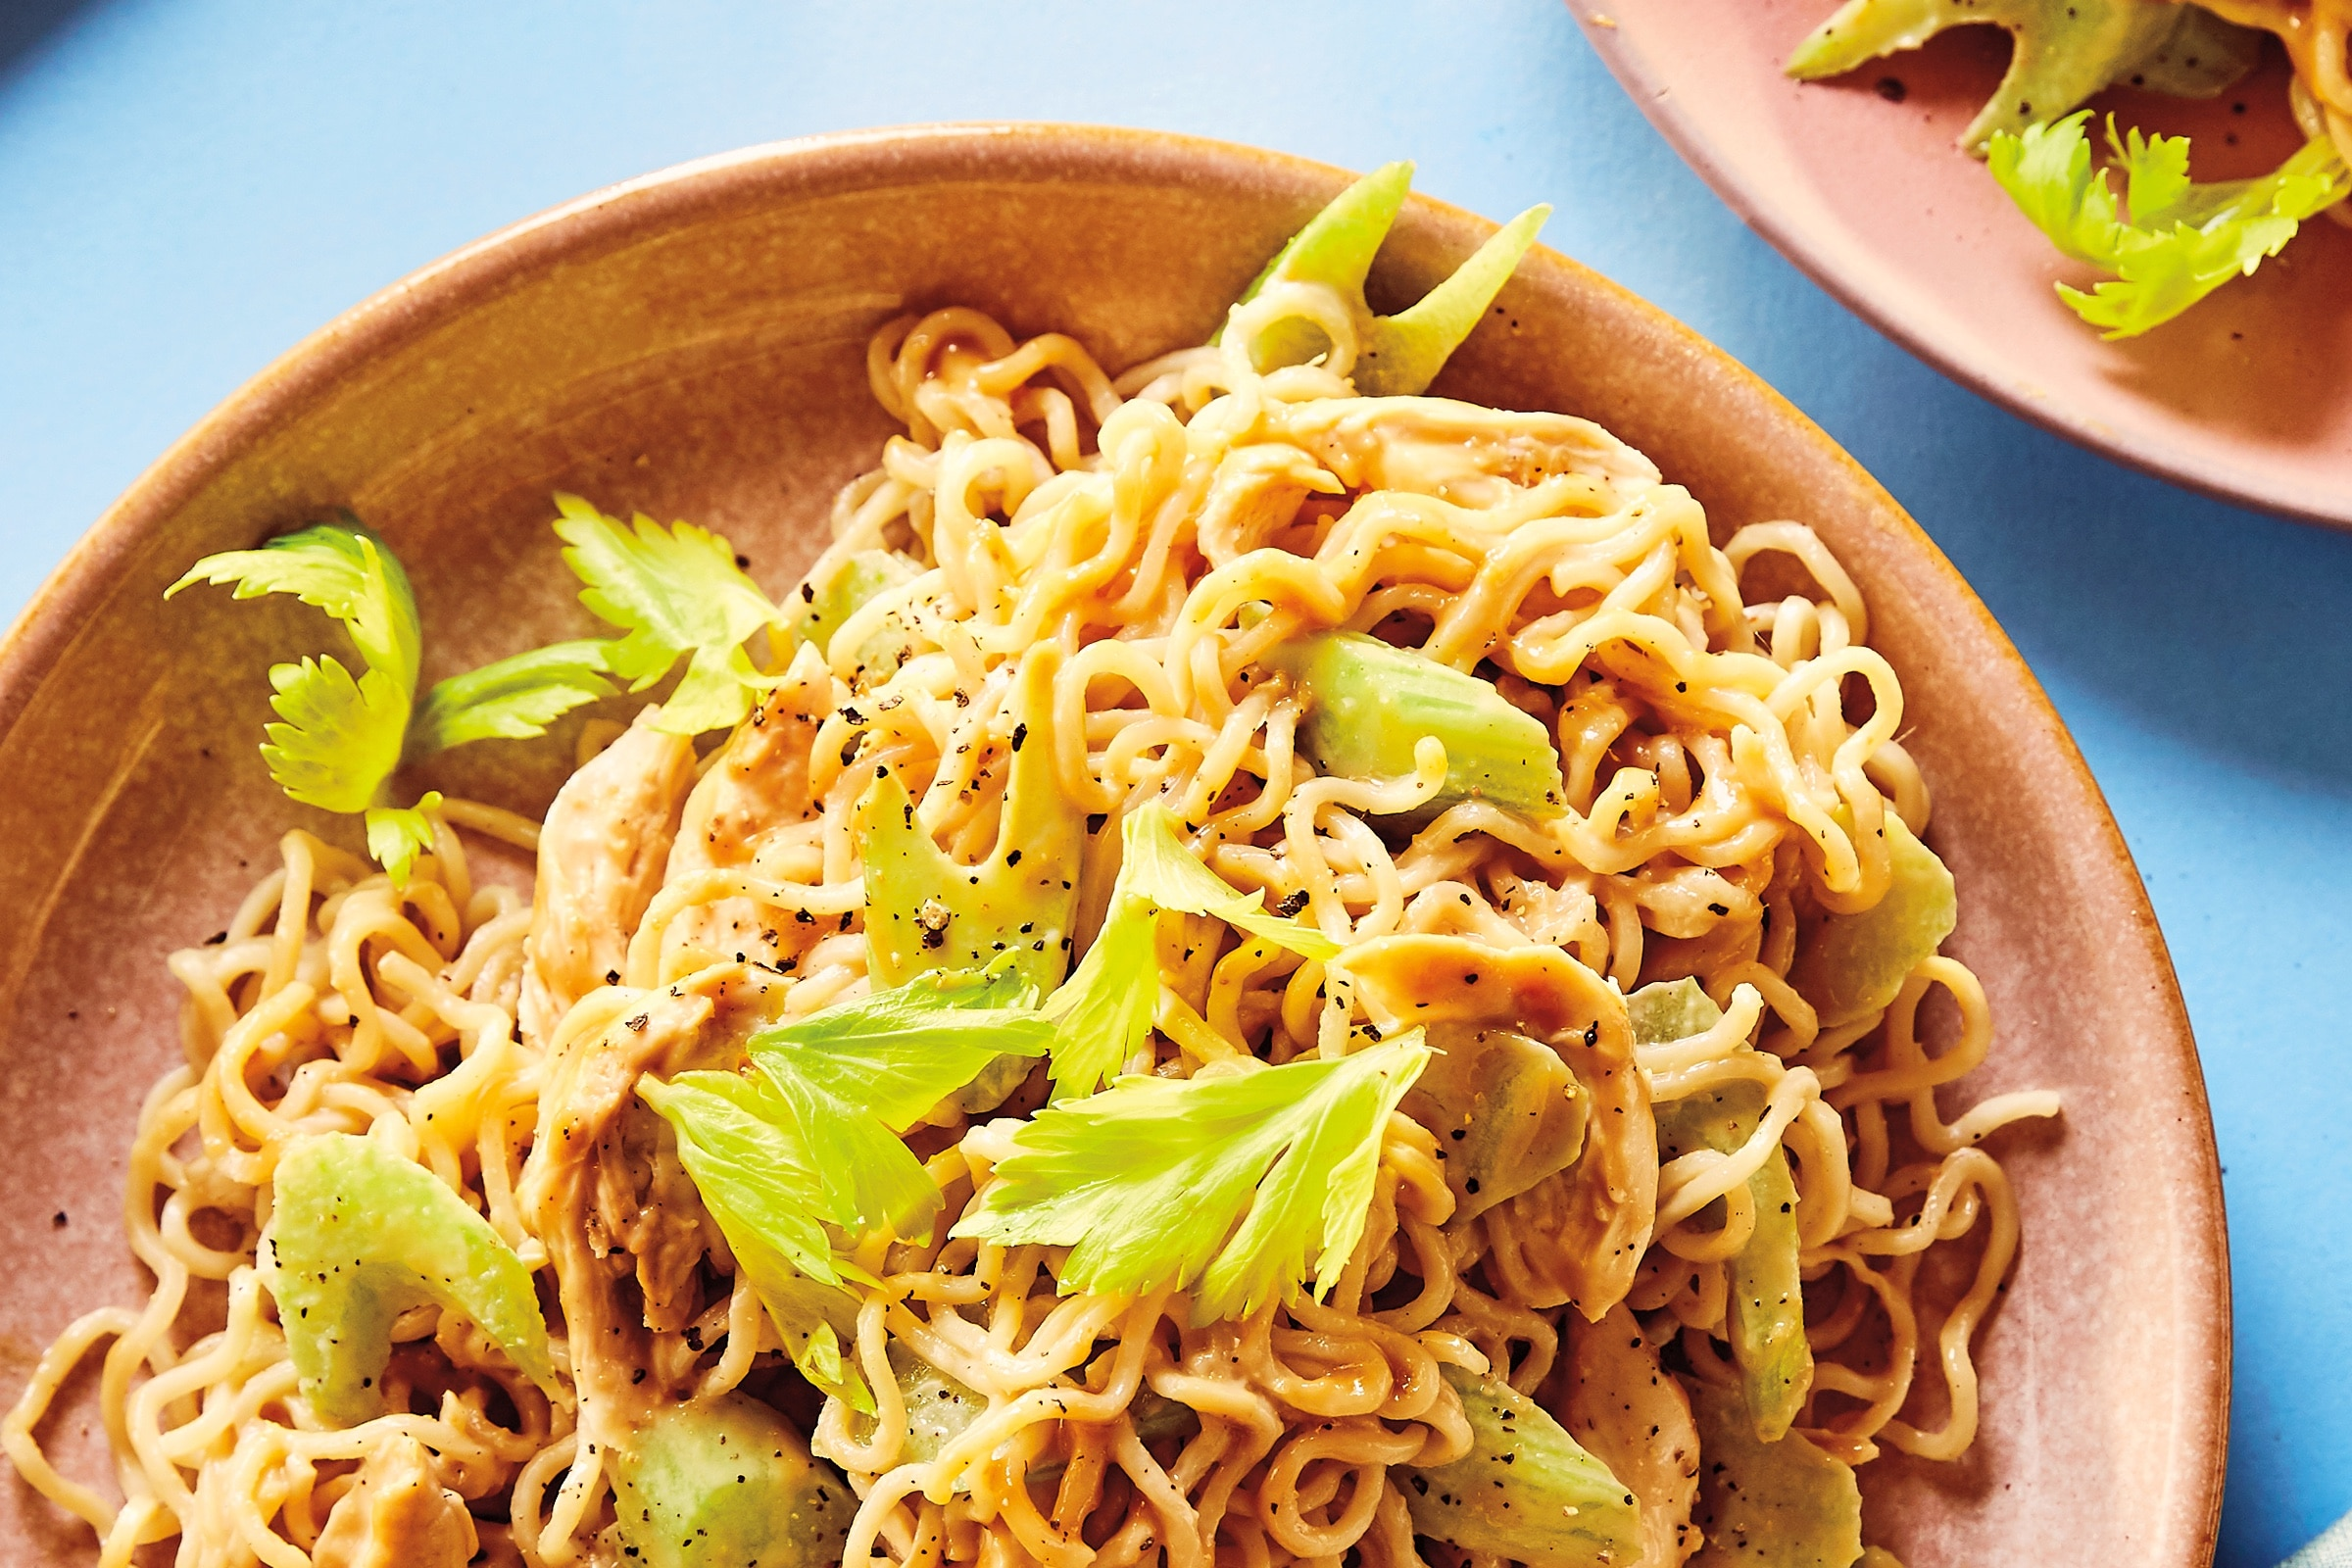 plate of noodles with chicken and celery